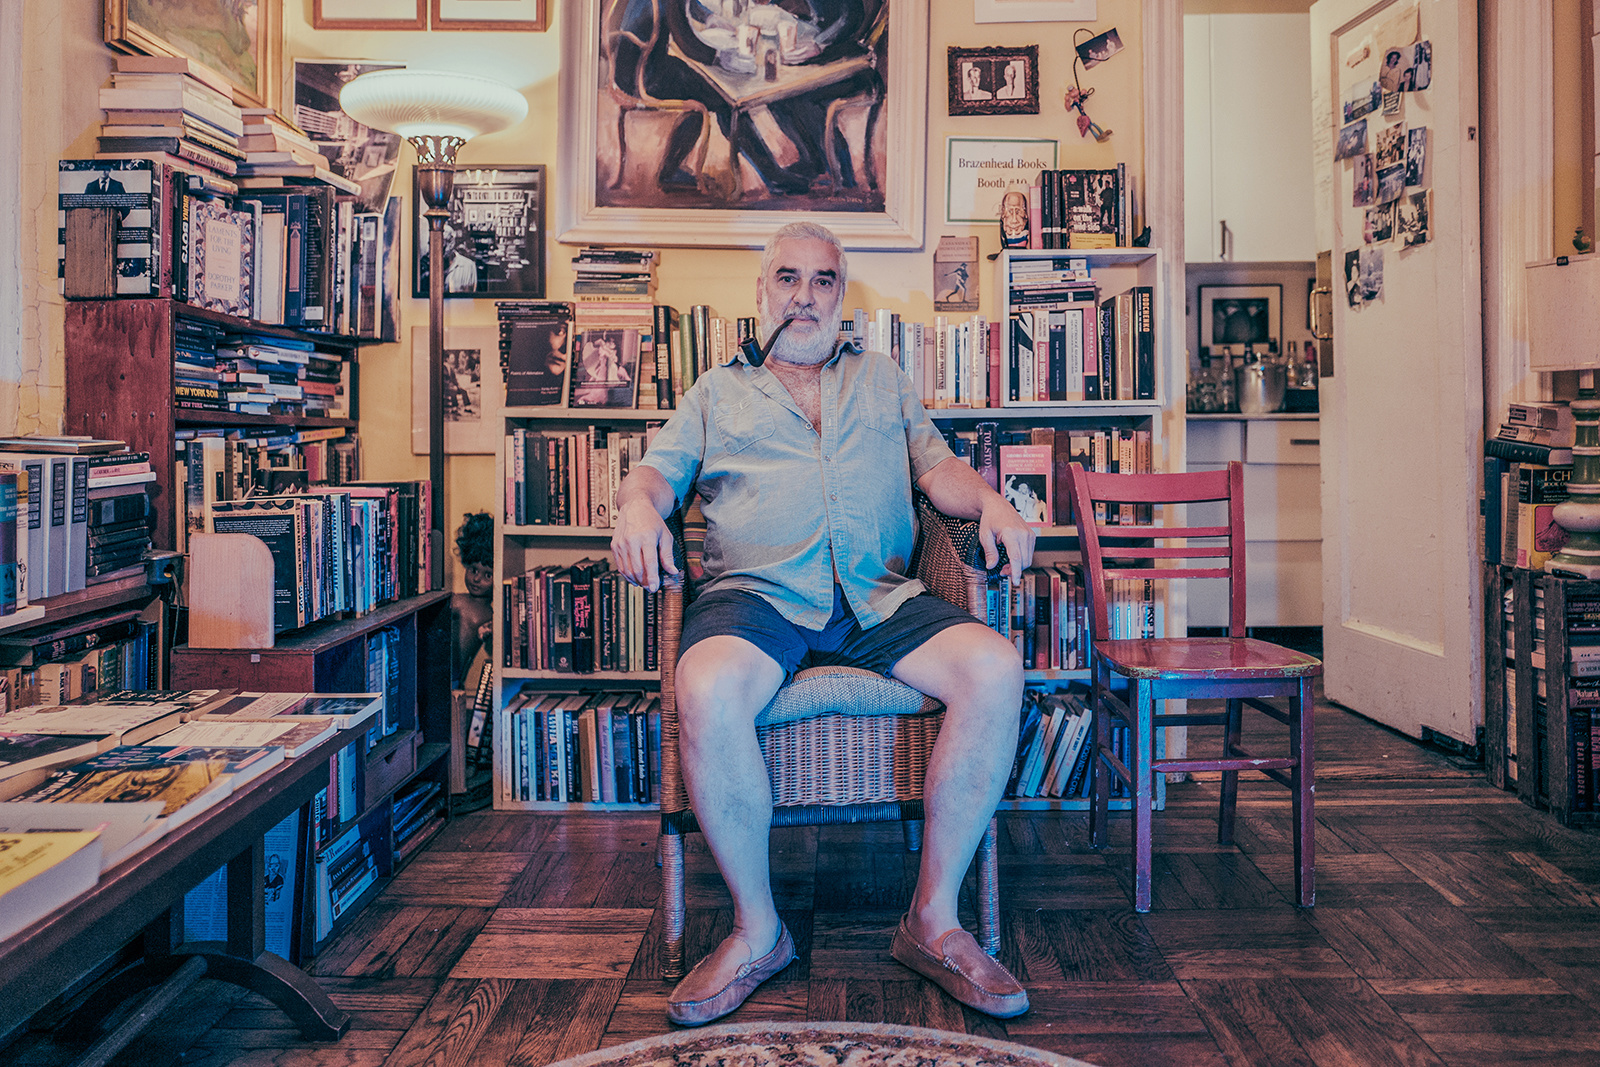 Michael Seidenberg at Brazenhead Books, Yorkville, Manhattan, 2017.